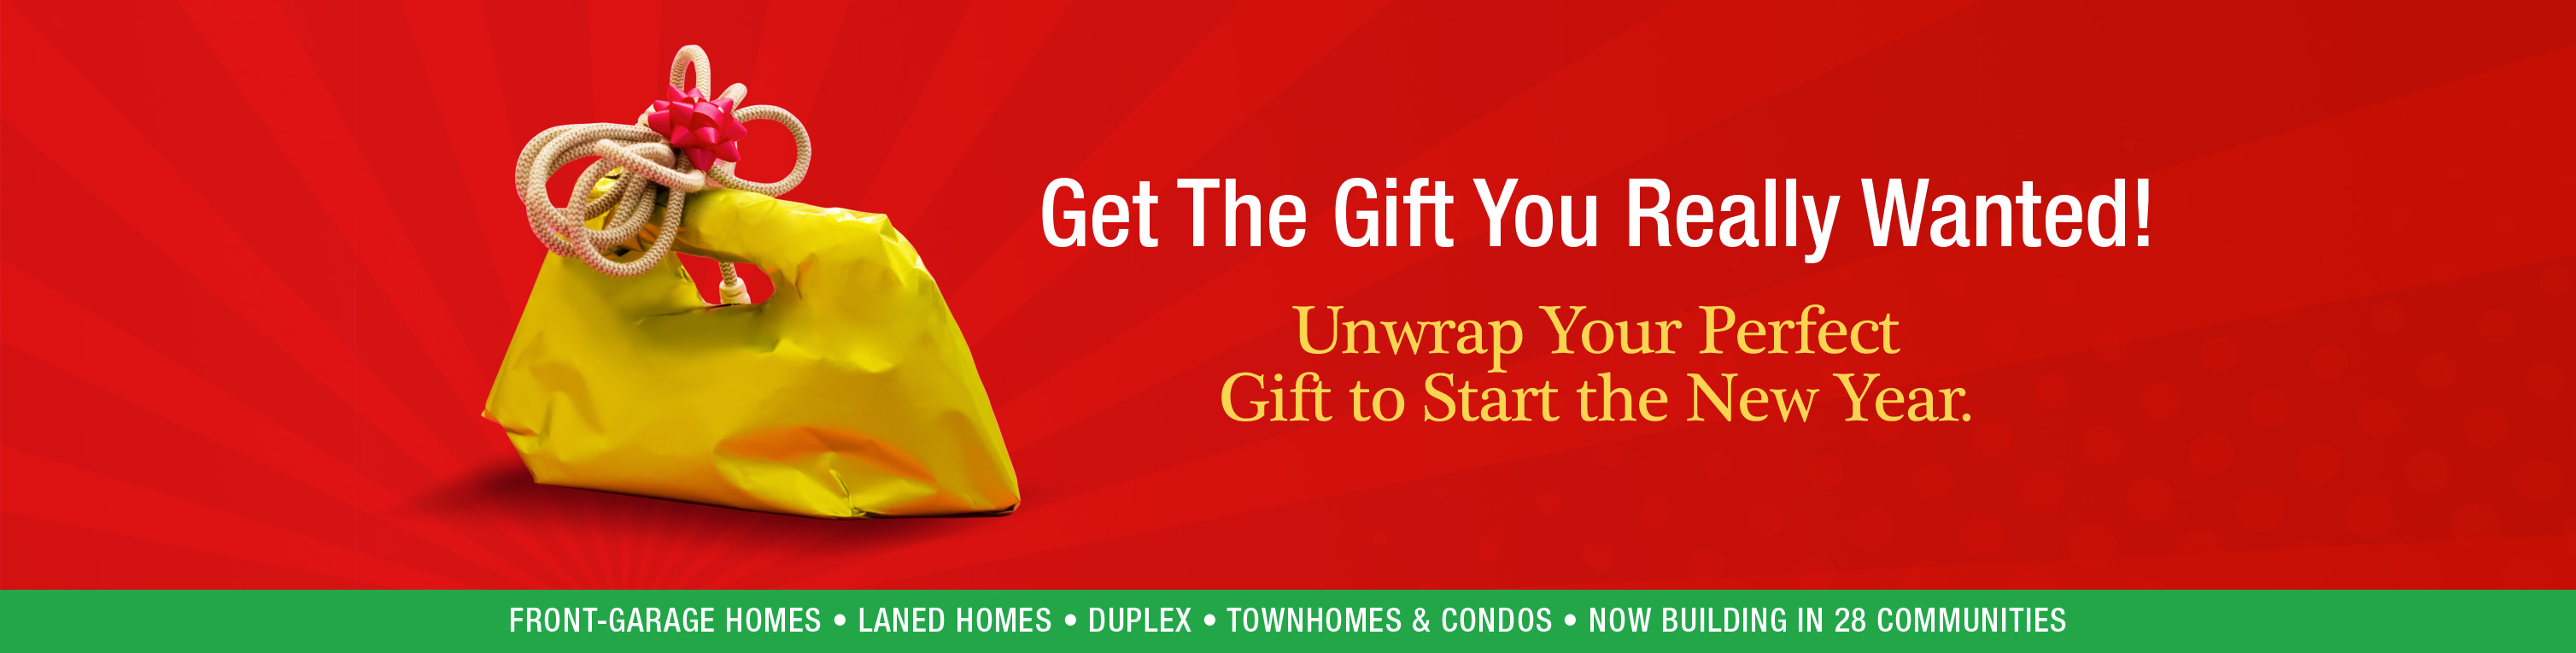 Unwrap Your Perfect  Gift to Start the New Year.